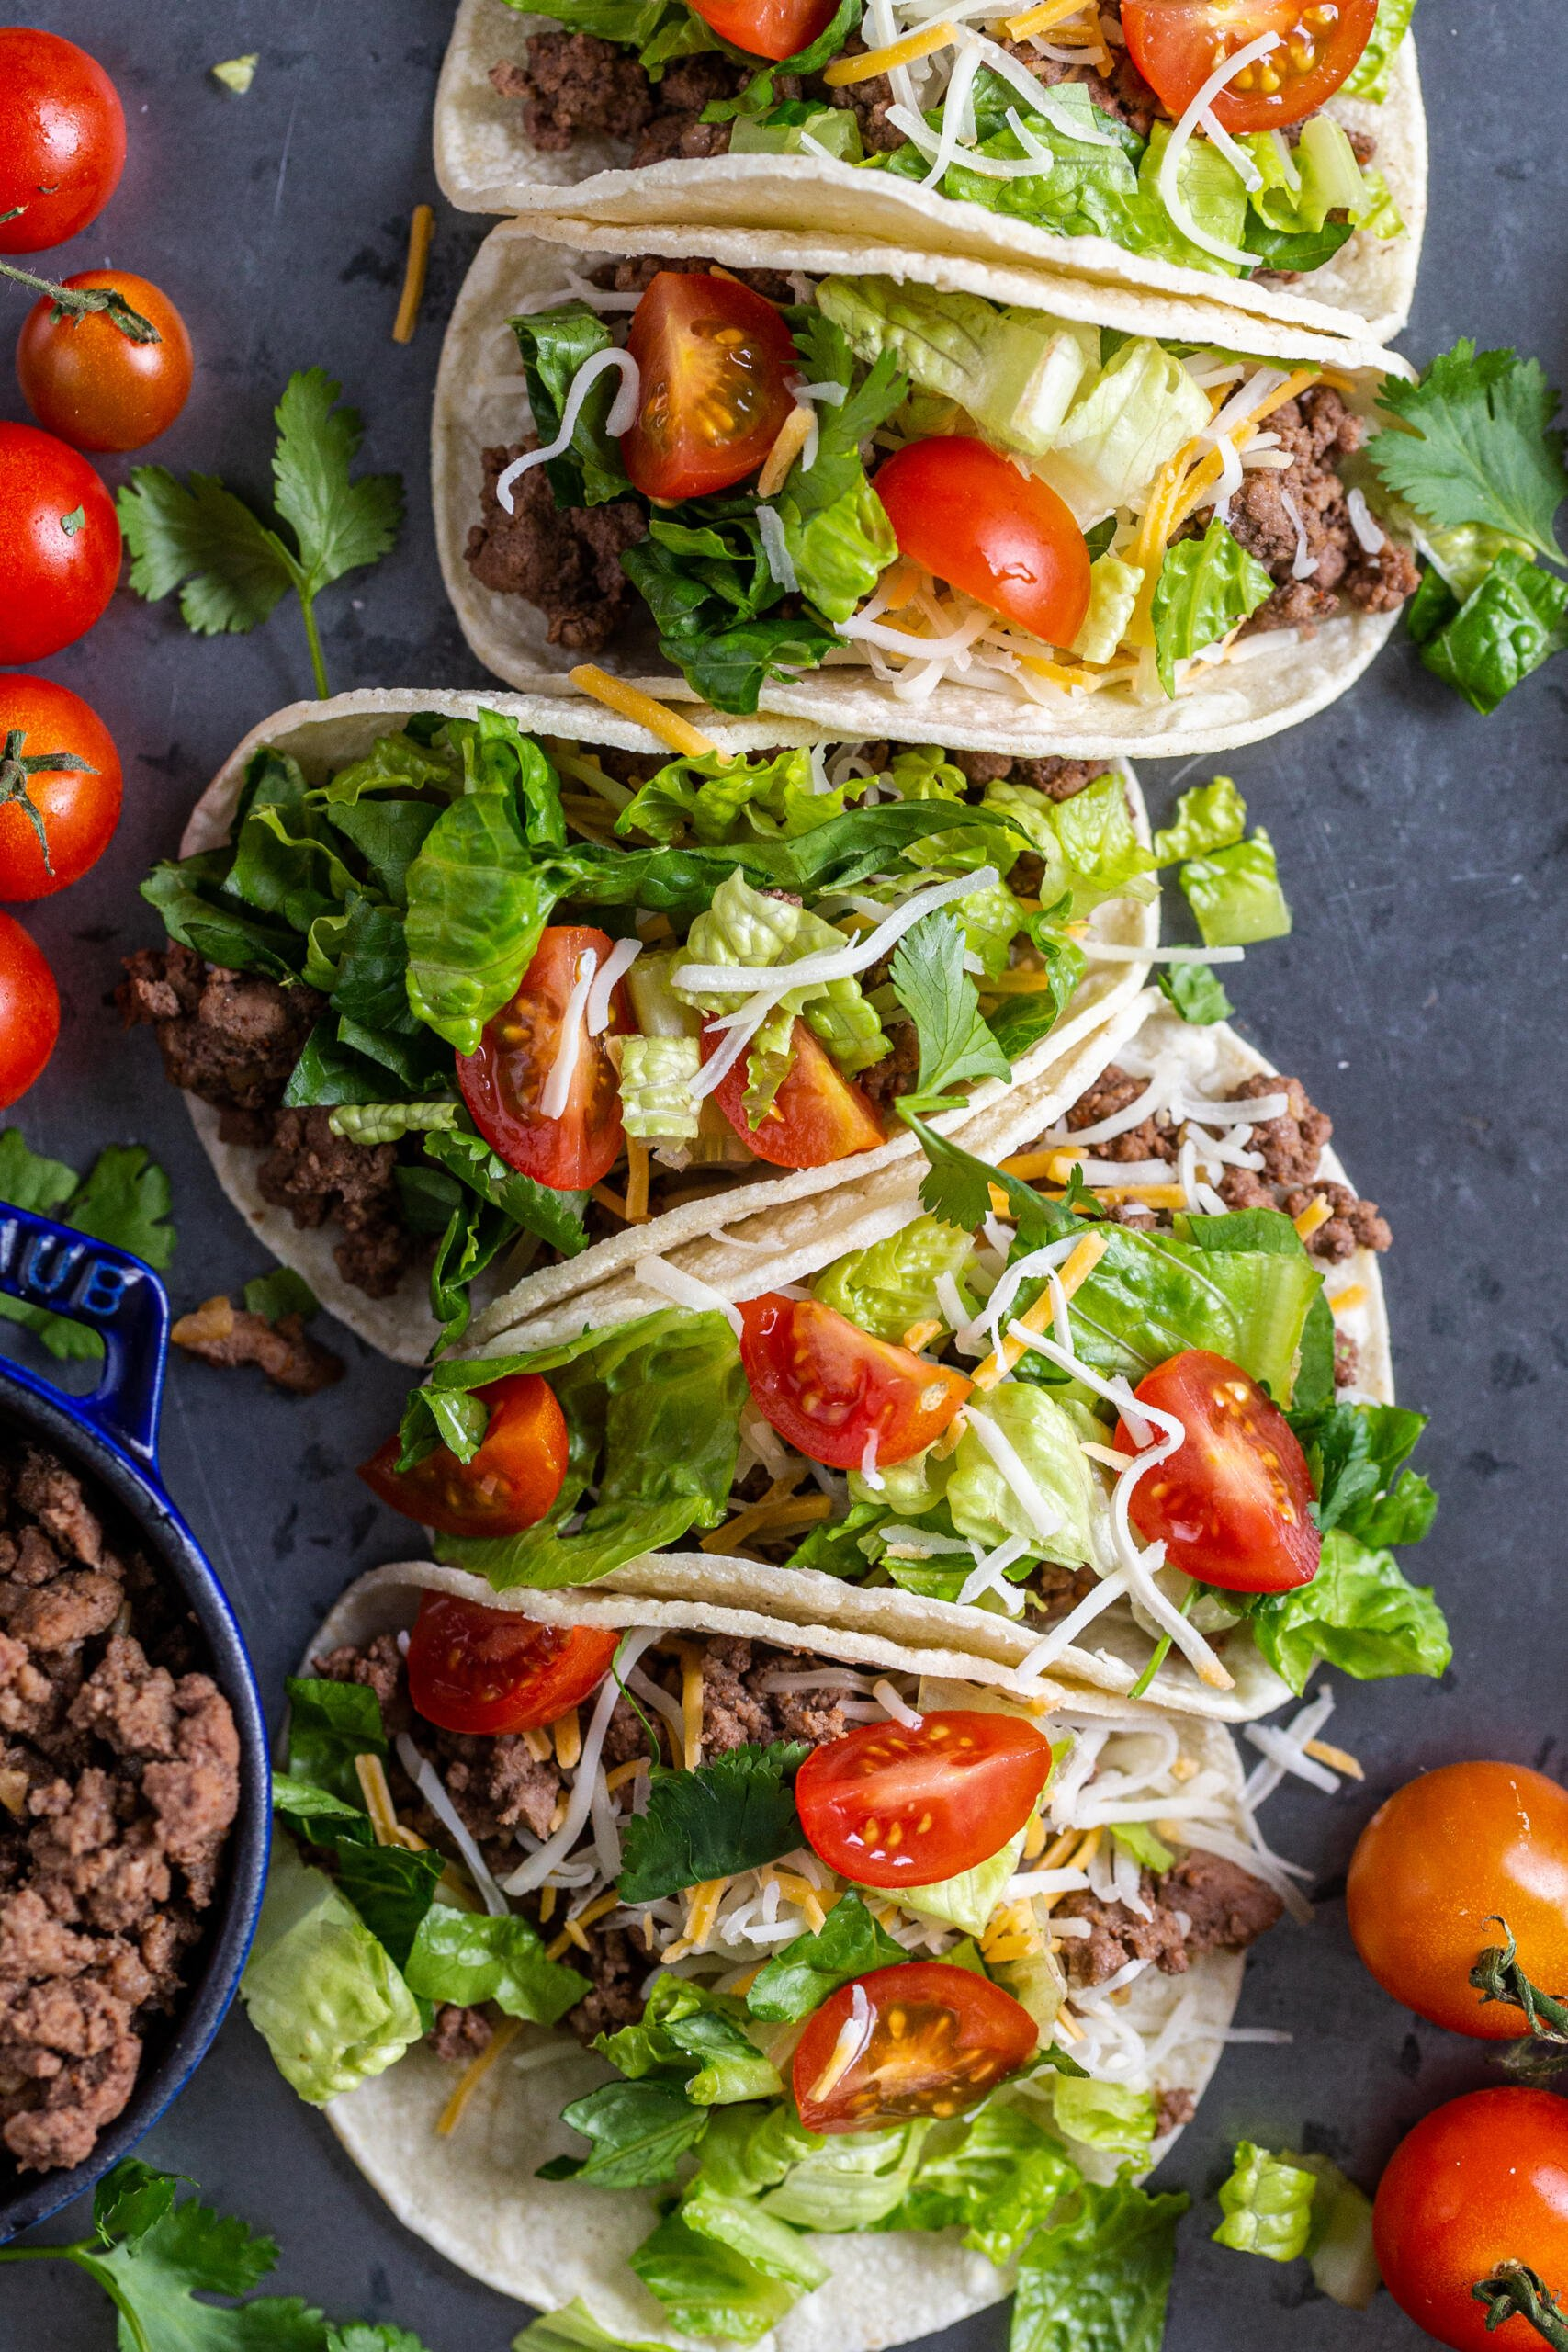 Ground beef tacos on a tray with veggies and meat on the sides